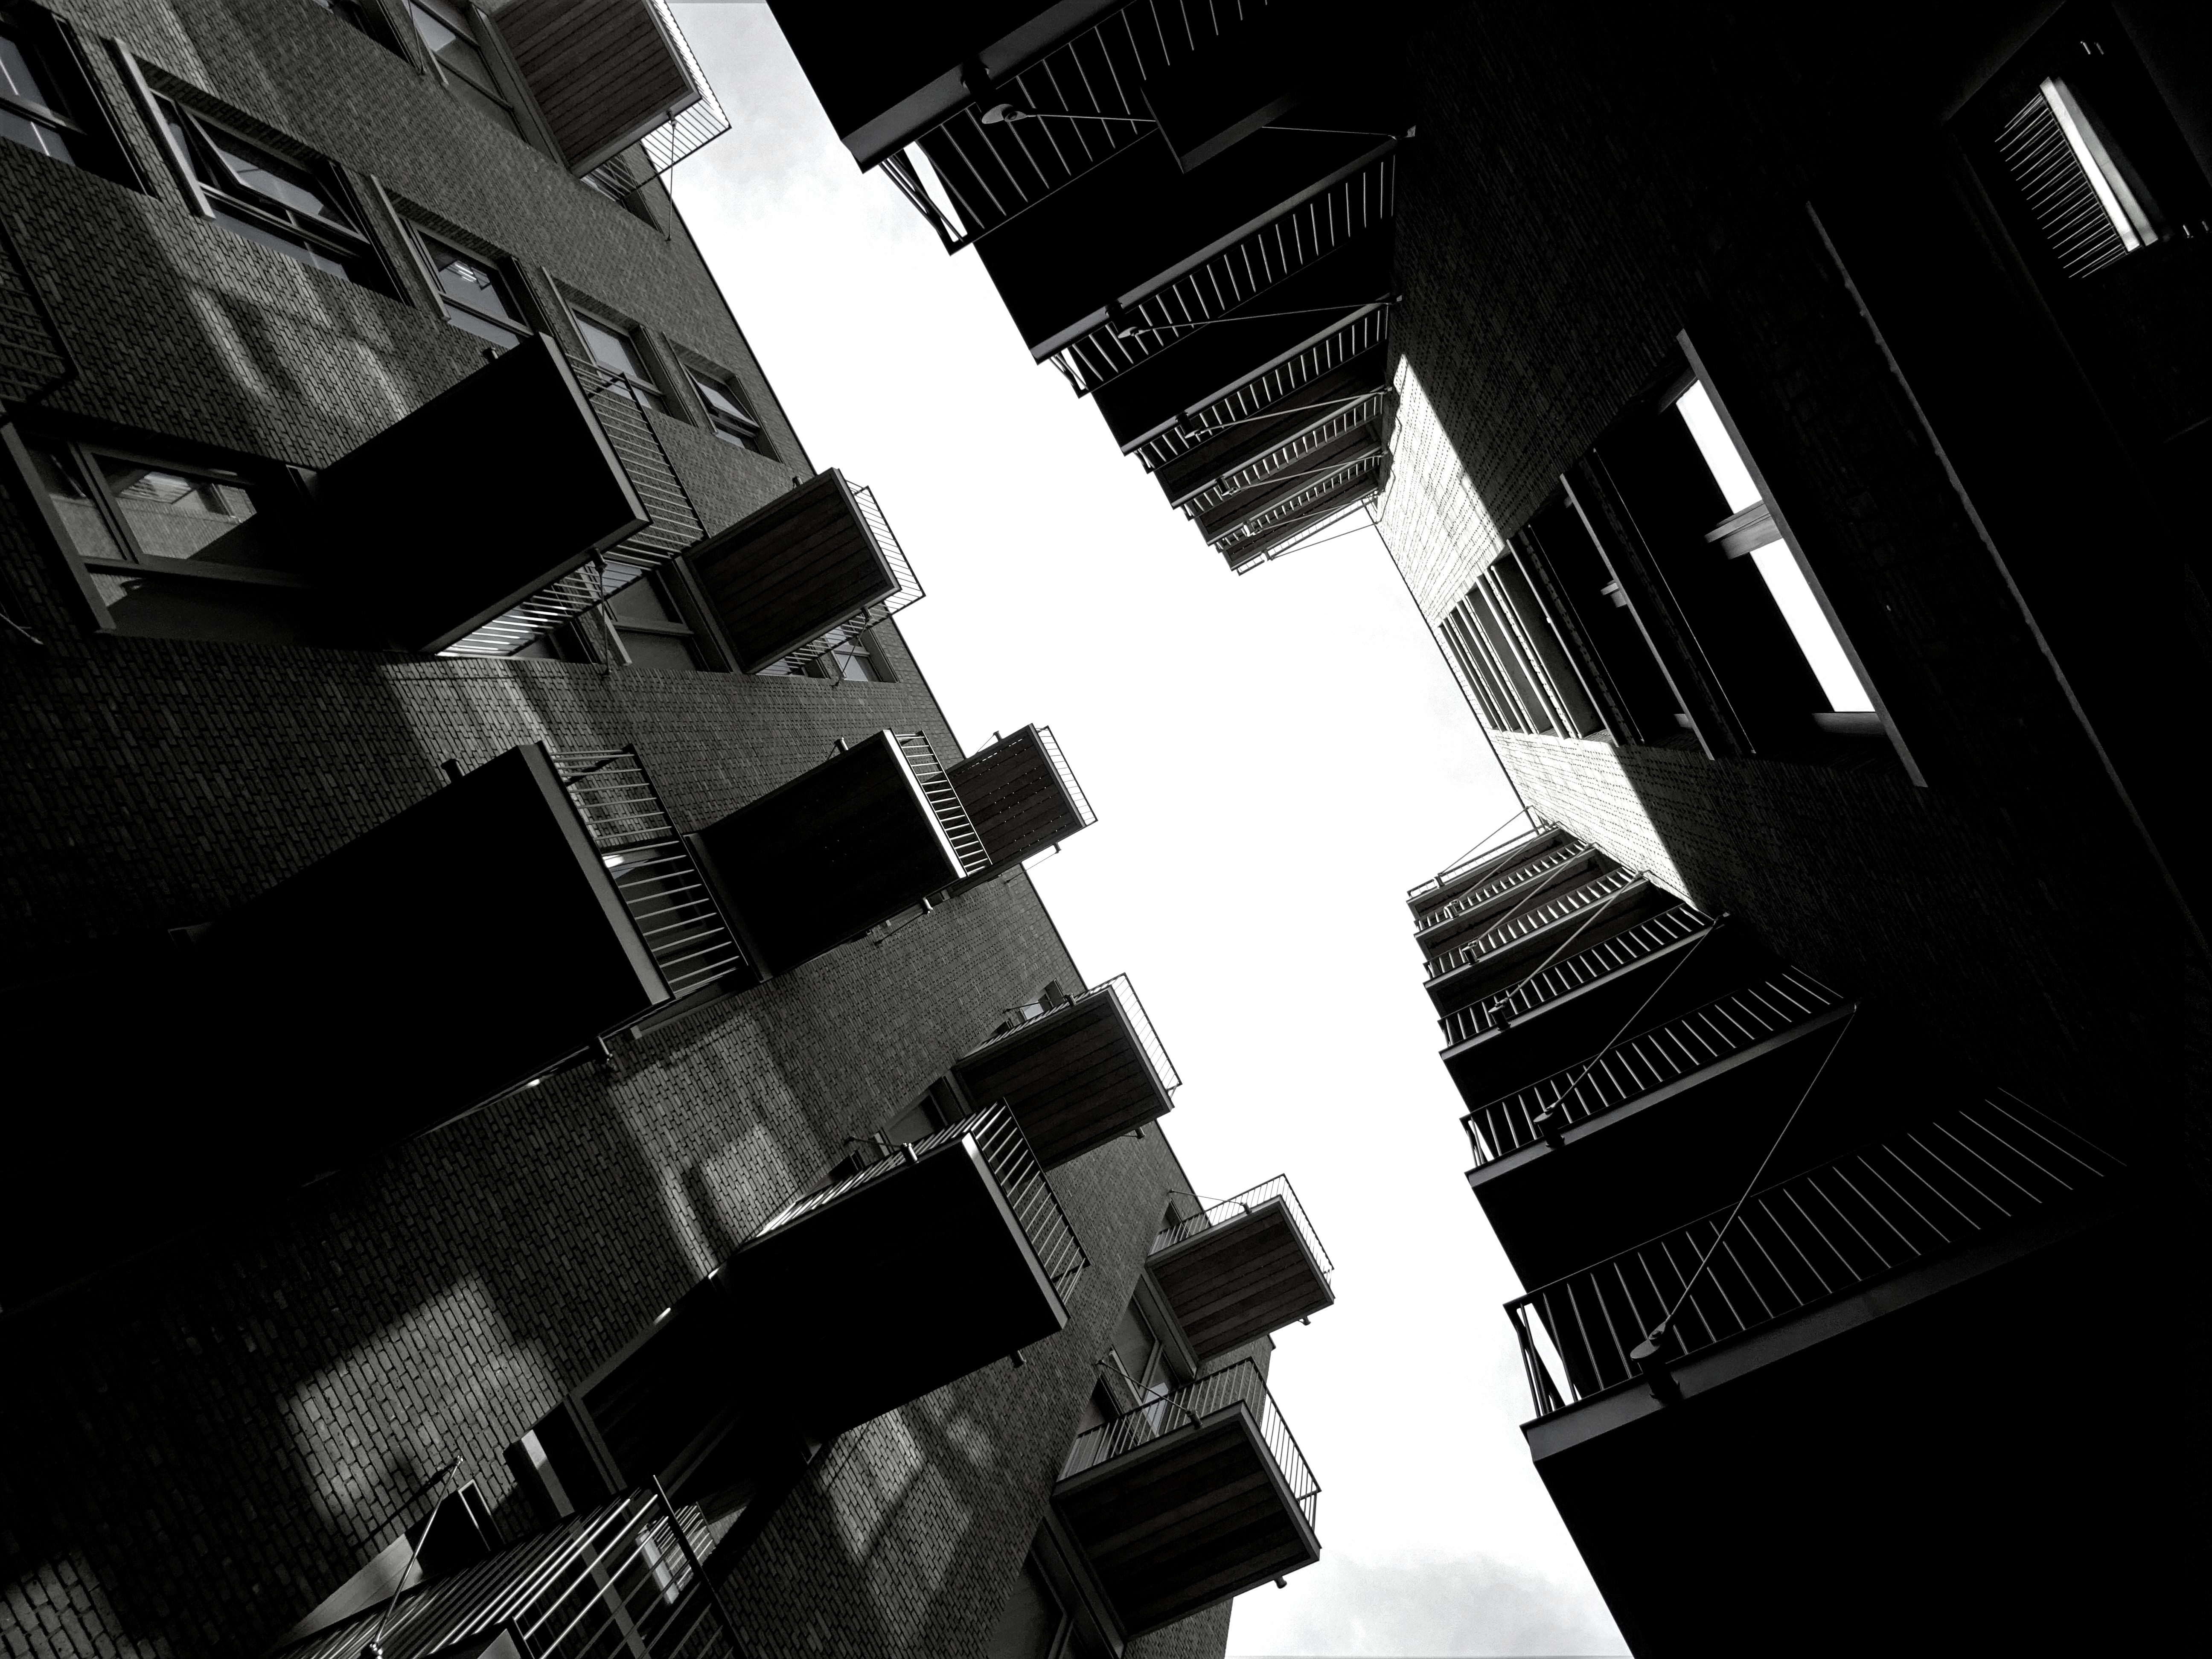 Free stock photo of black-and-white, dark, buildings, architecture